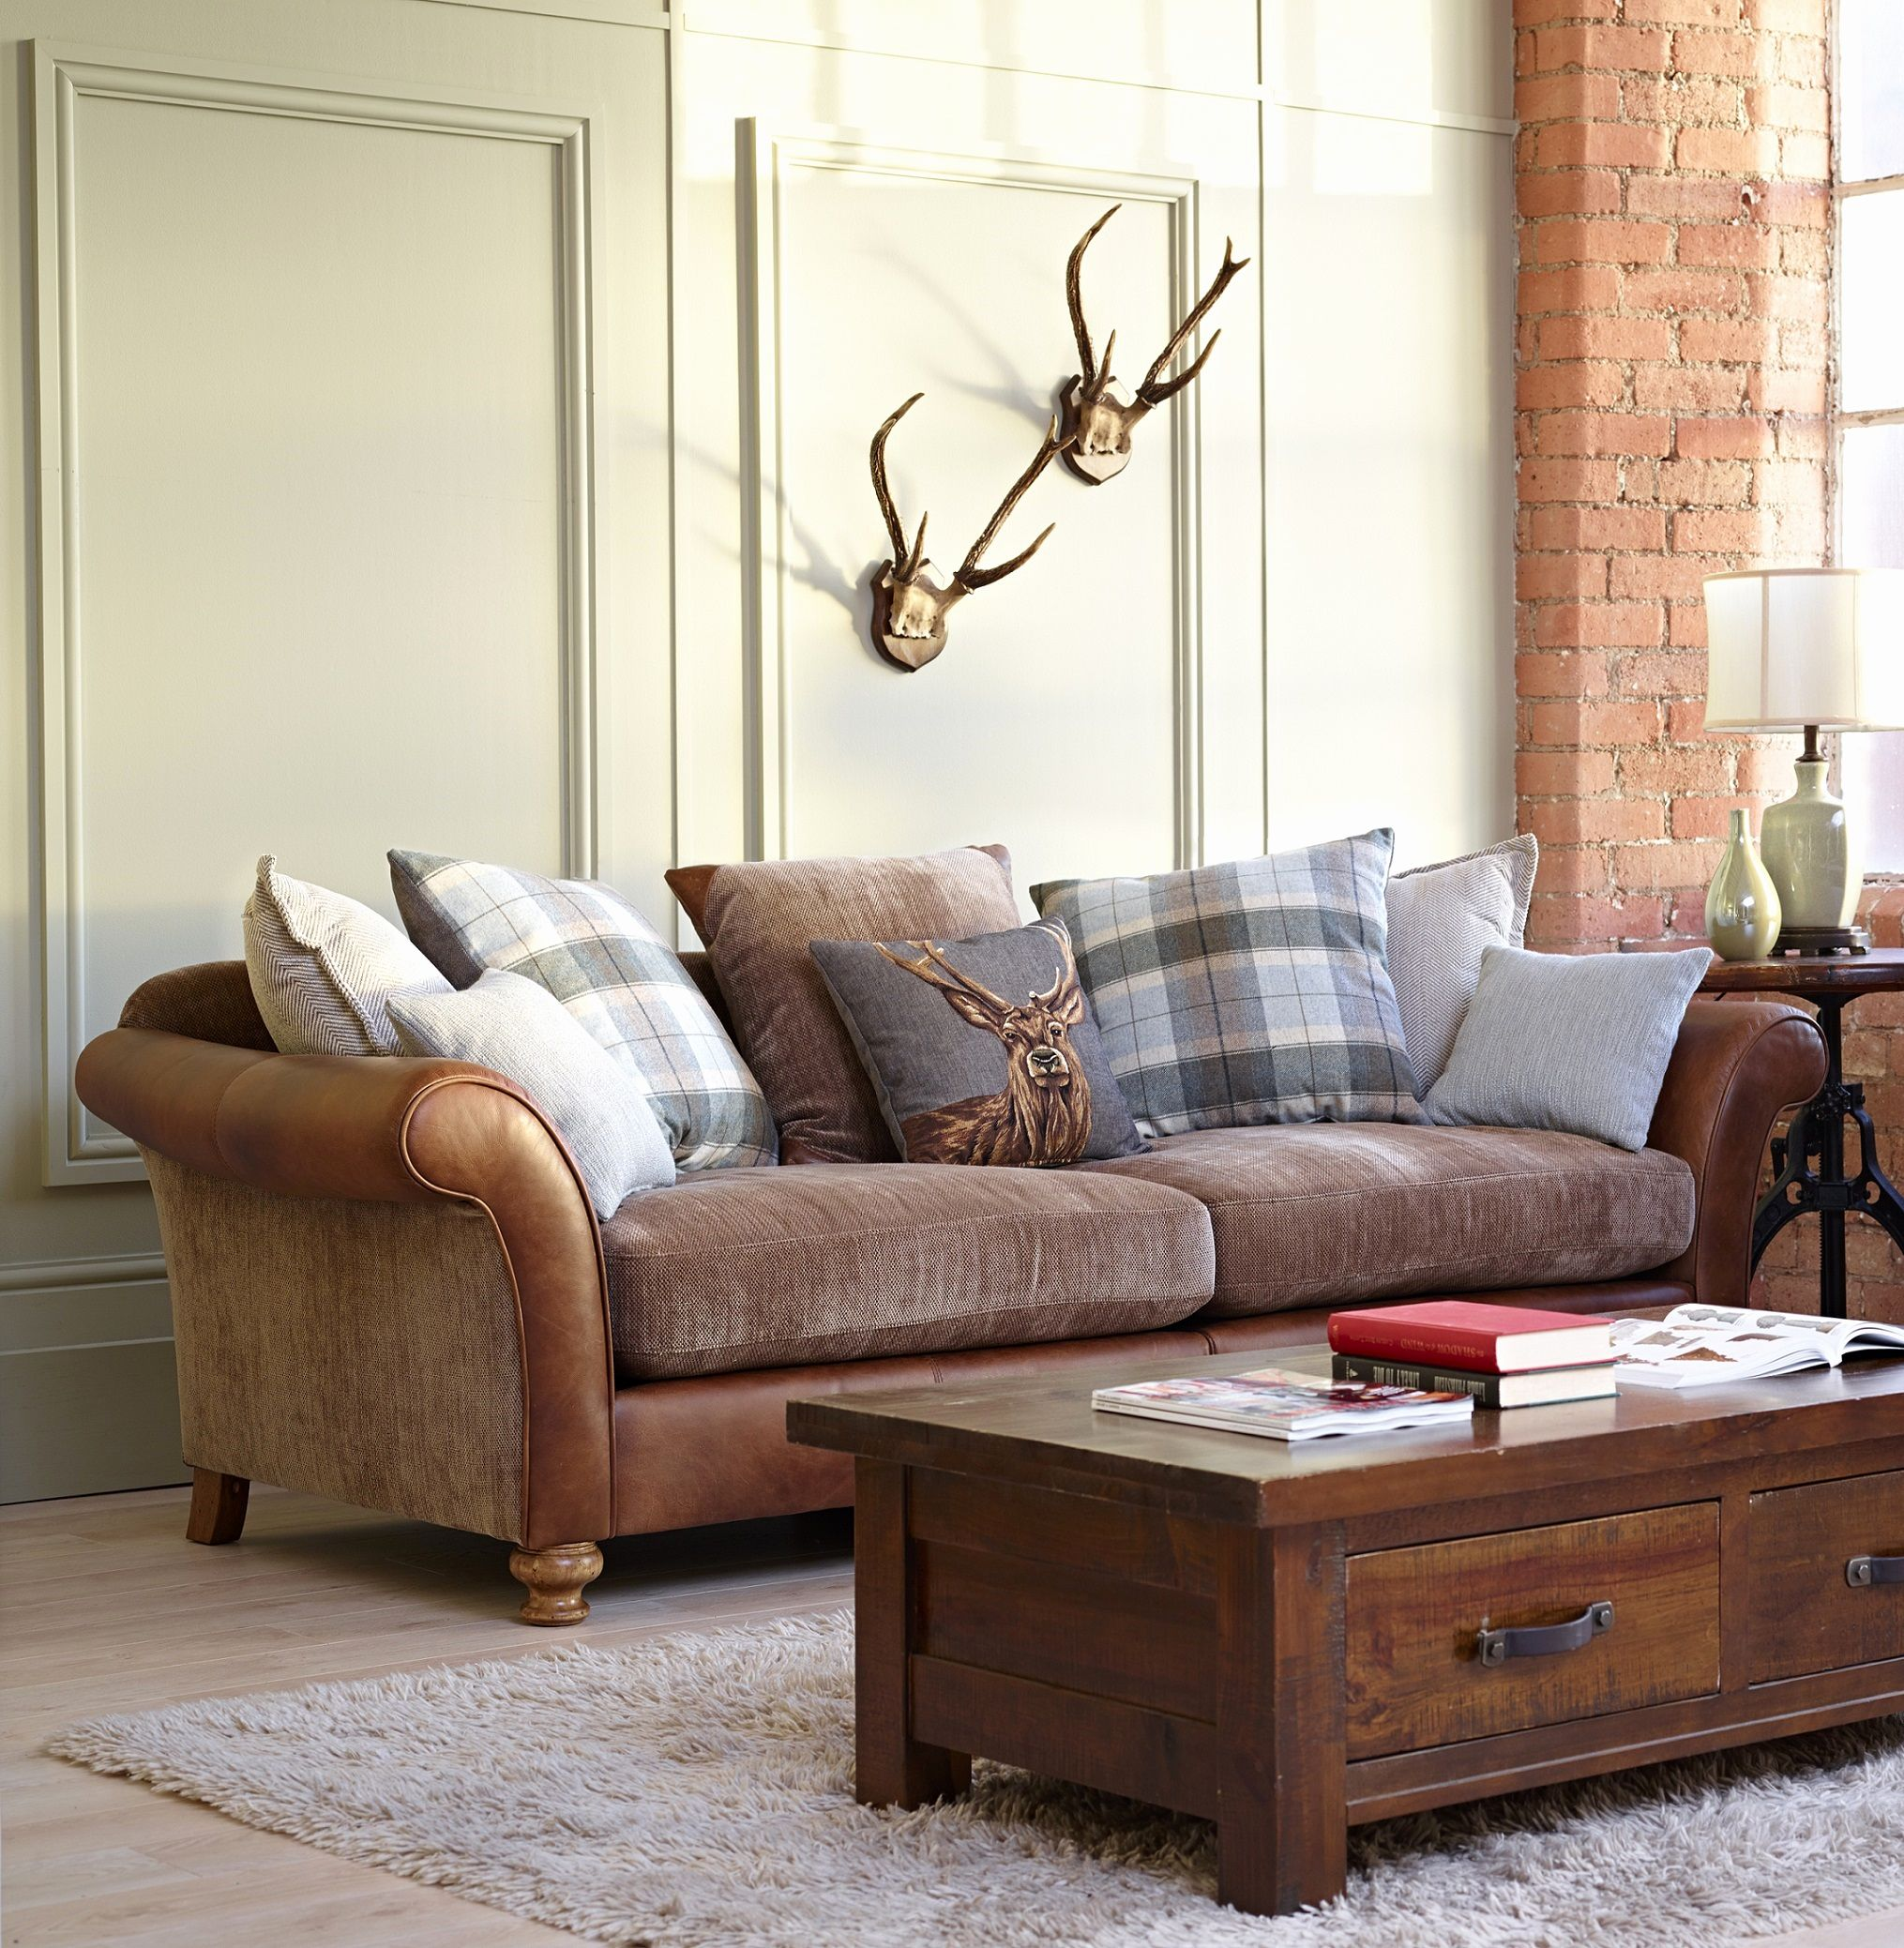 Ideas Leather And Fabric Sofa Images Leather And Fabric Sofa Mix Radiovannes Living Room Sofa Tan Leather Sofa Living Room